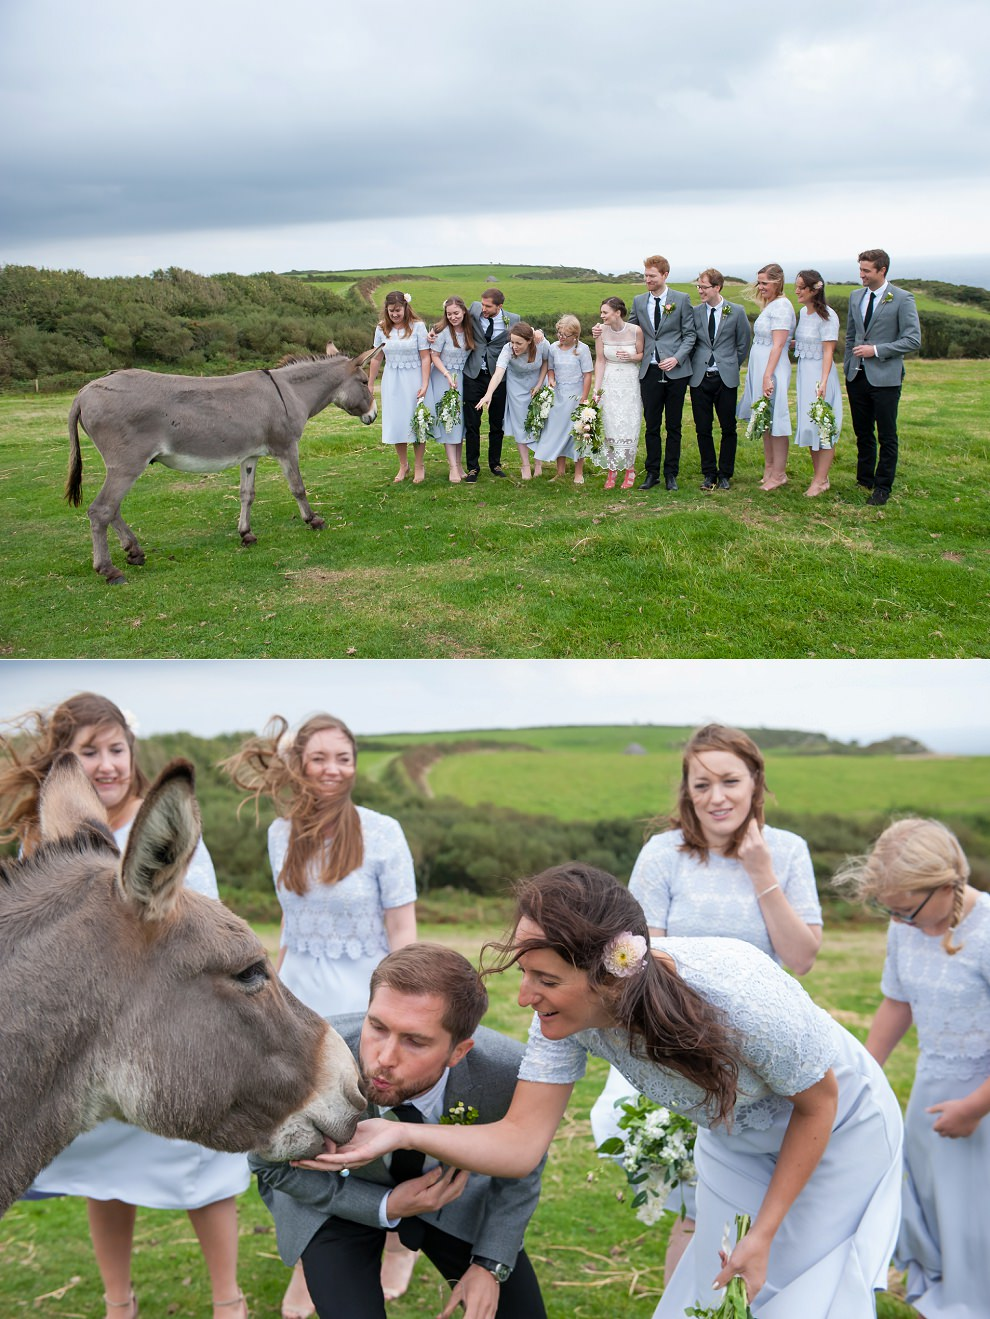 wedding donkey East Soar Farm